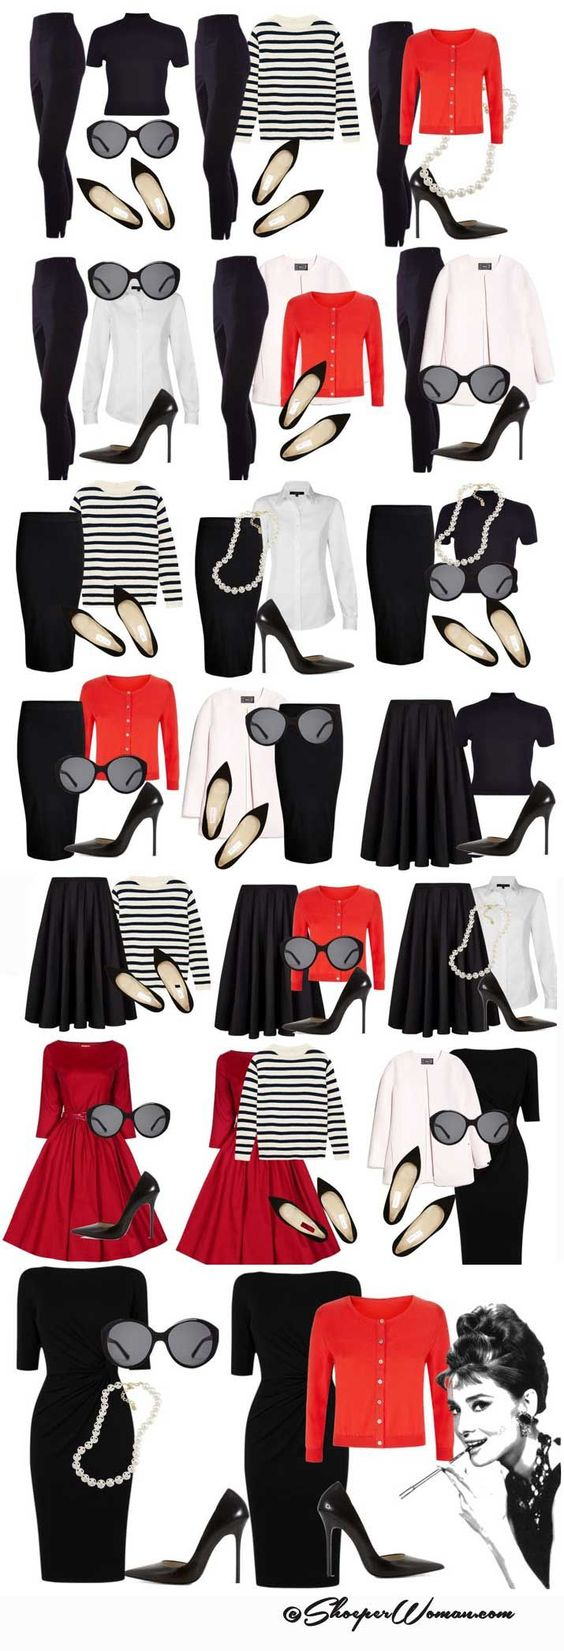 Audrey Hepburn style outfits from small capsule wardrobe. @laurencm: